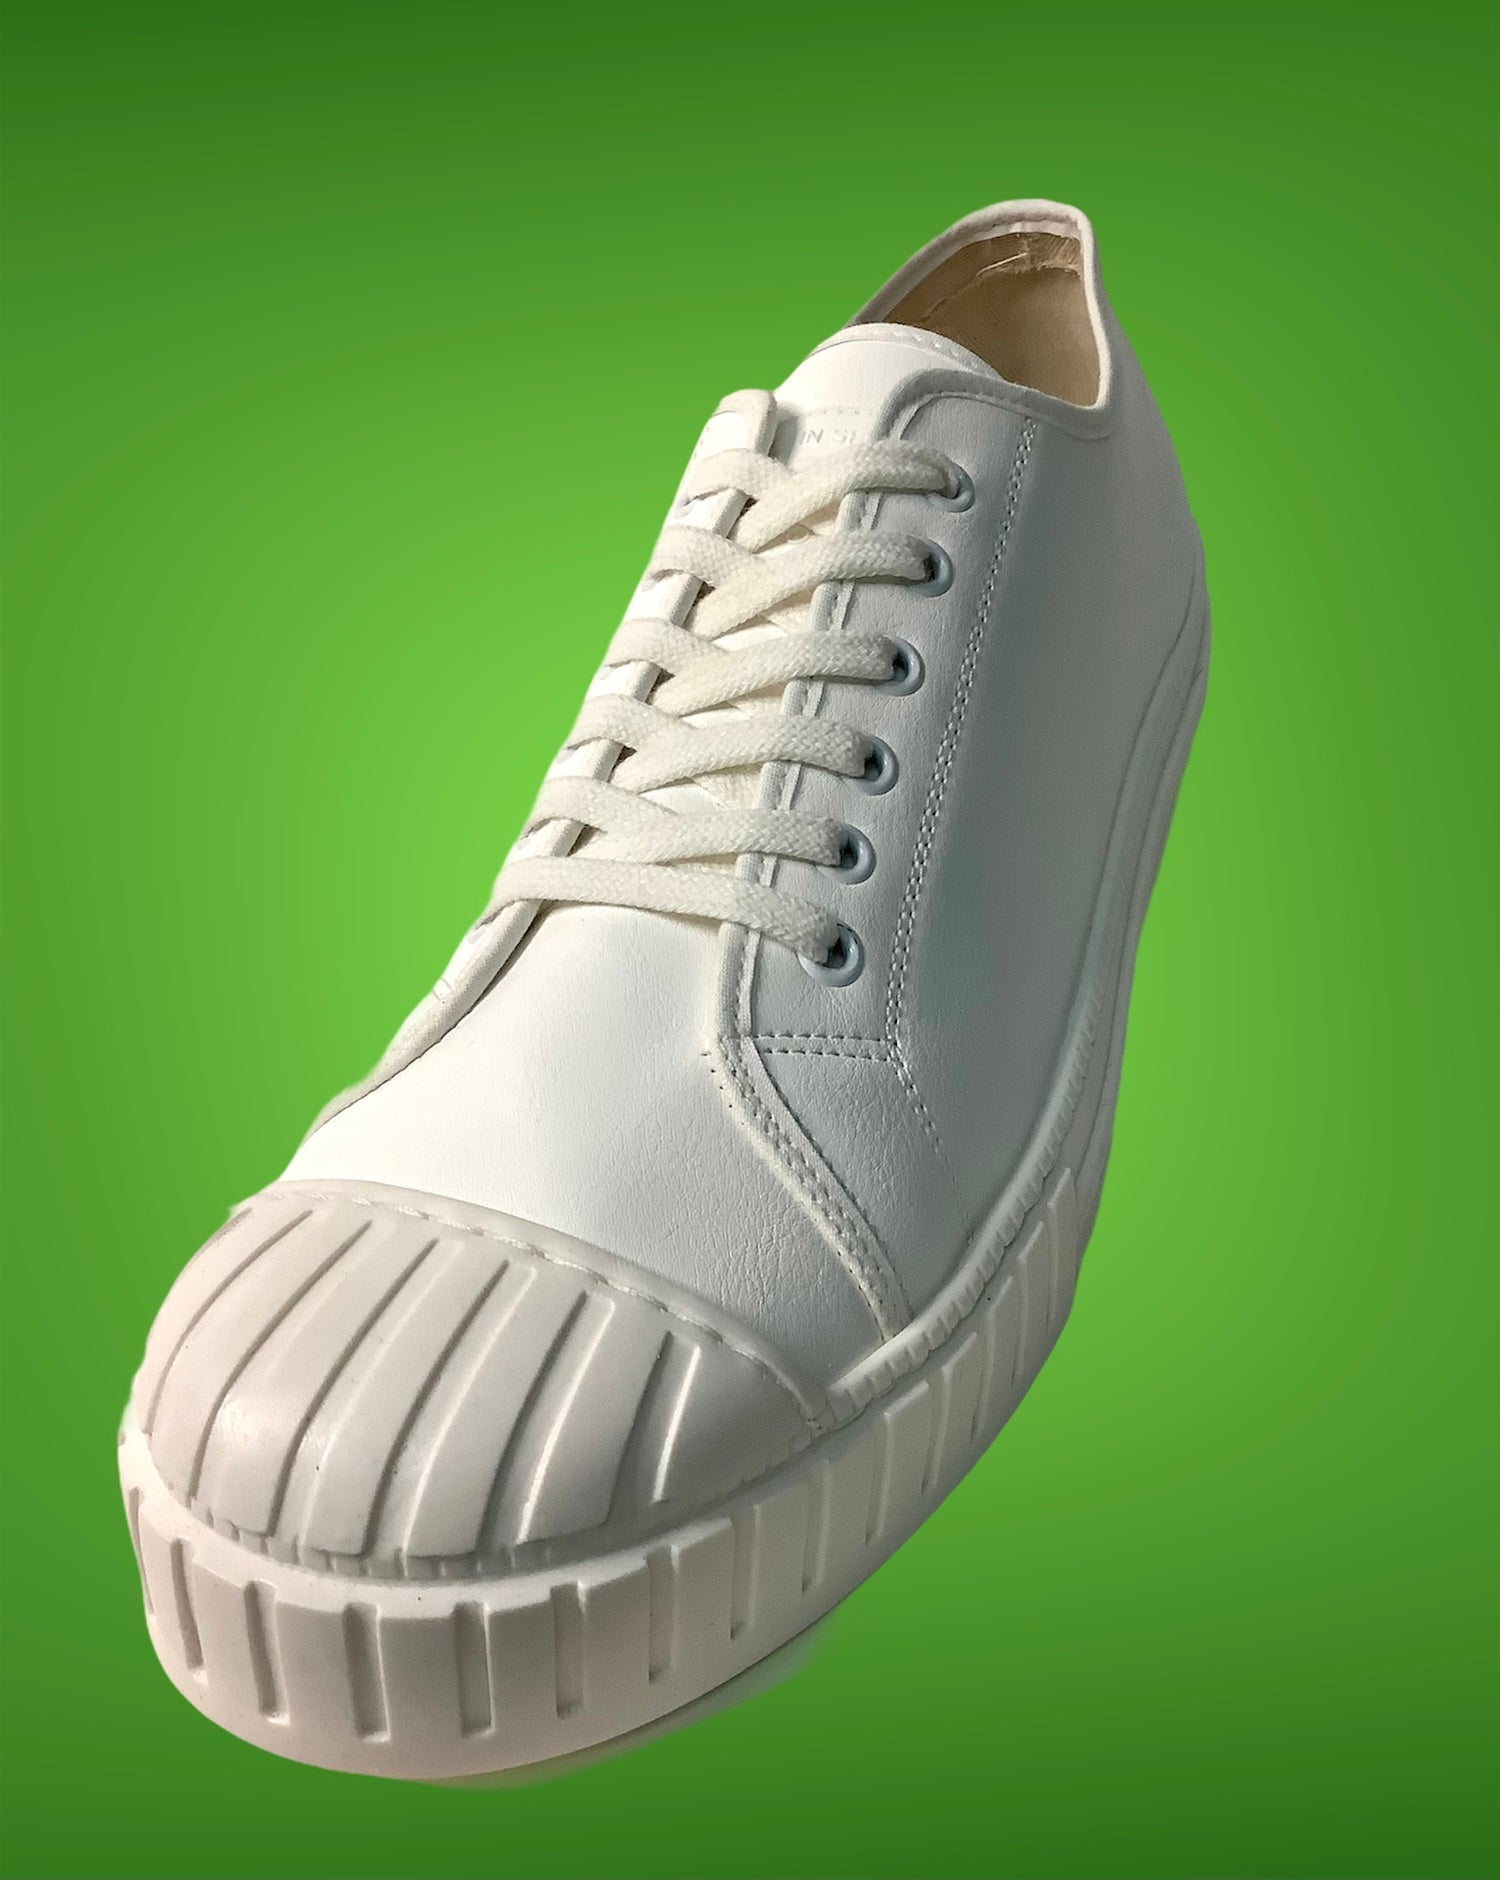 Image of Tortola leather white lo top sneaker shoes made in Spain